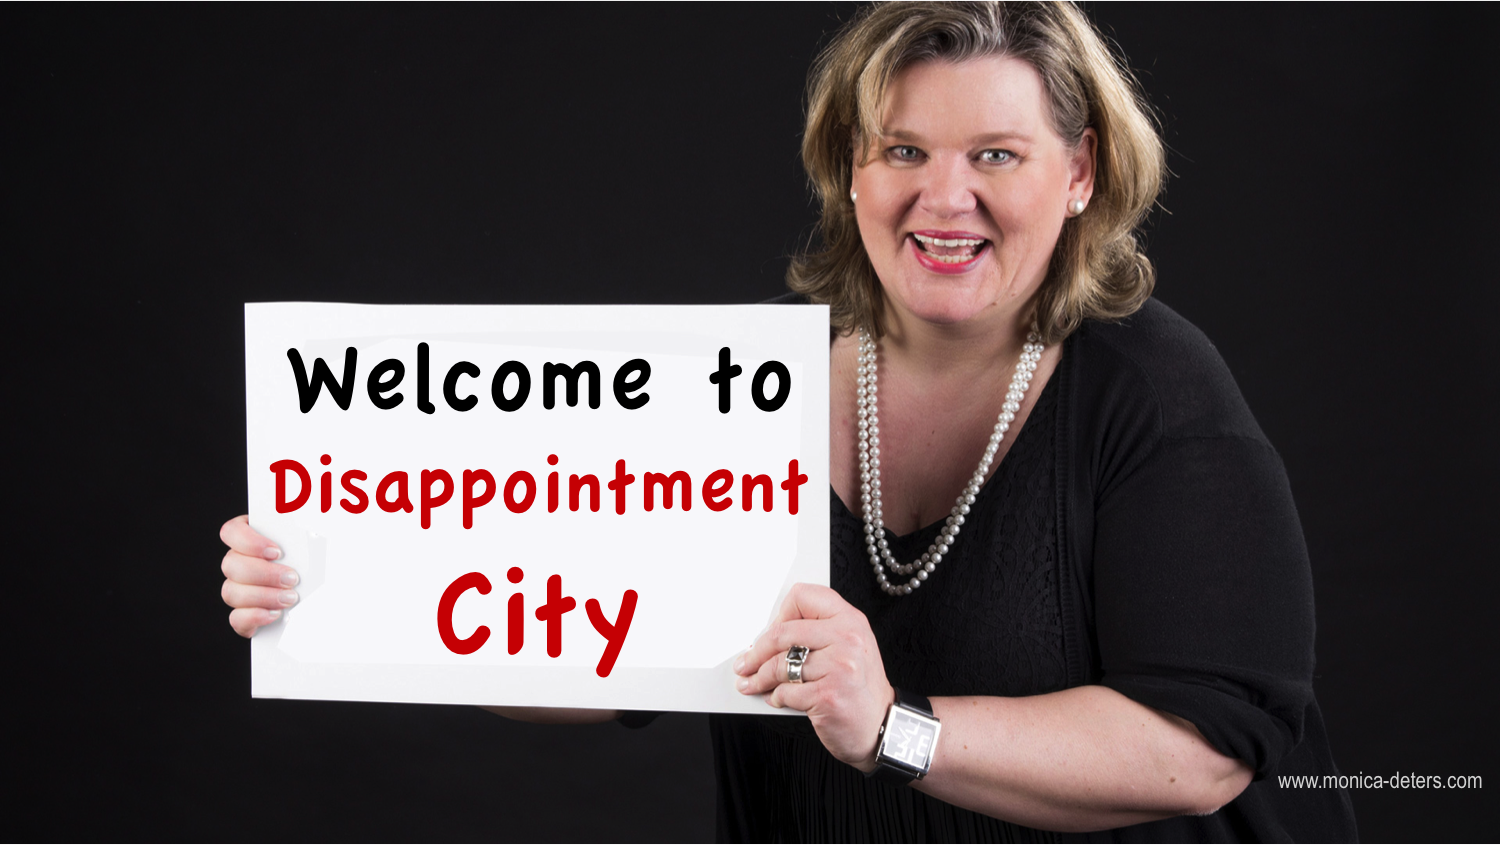 Welcome to Disappointment City